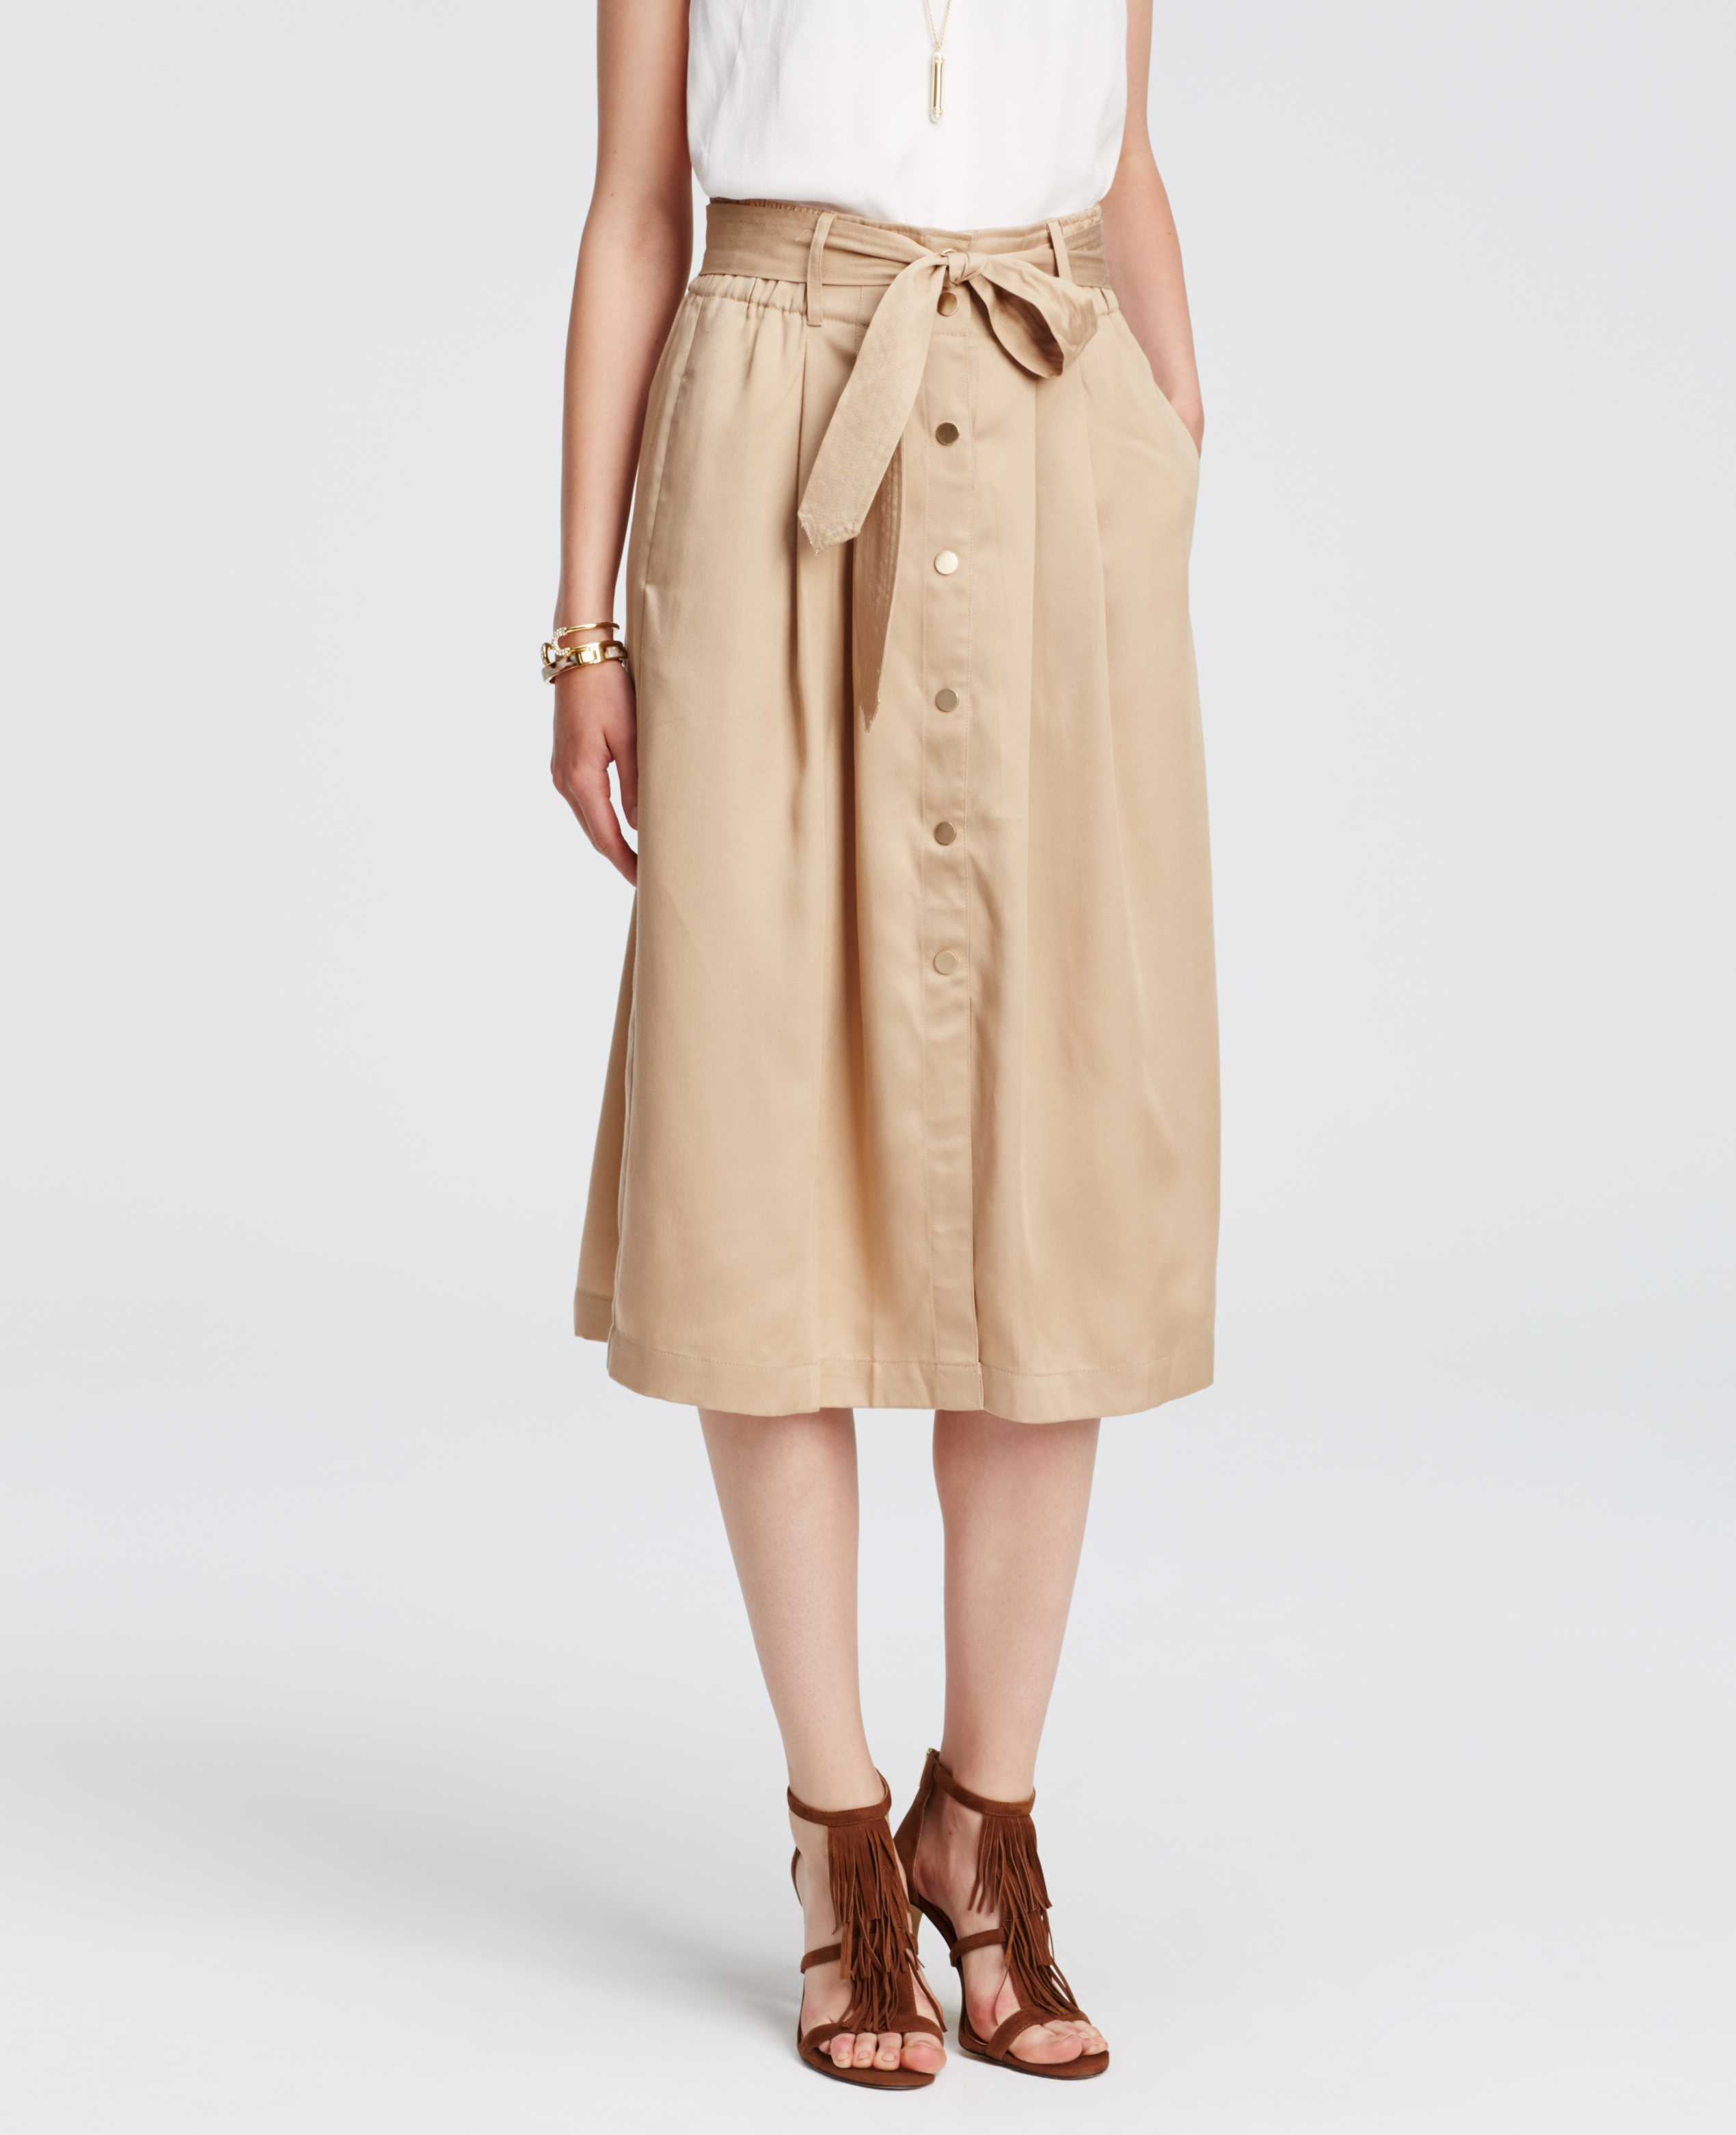 Ann taylor Petite Belted Twill Midi Skirt in Natural